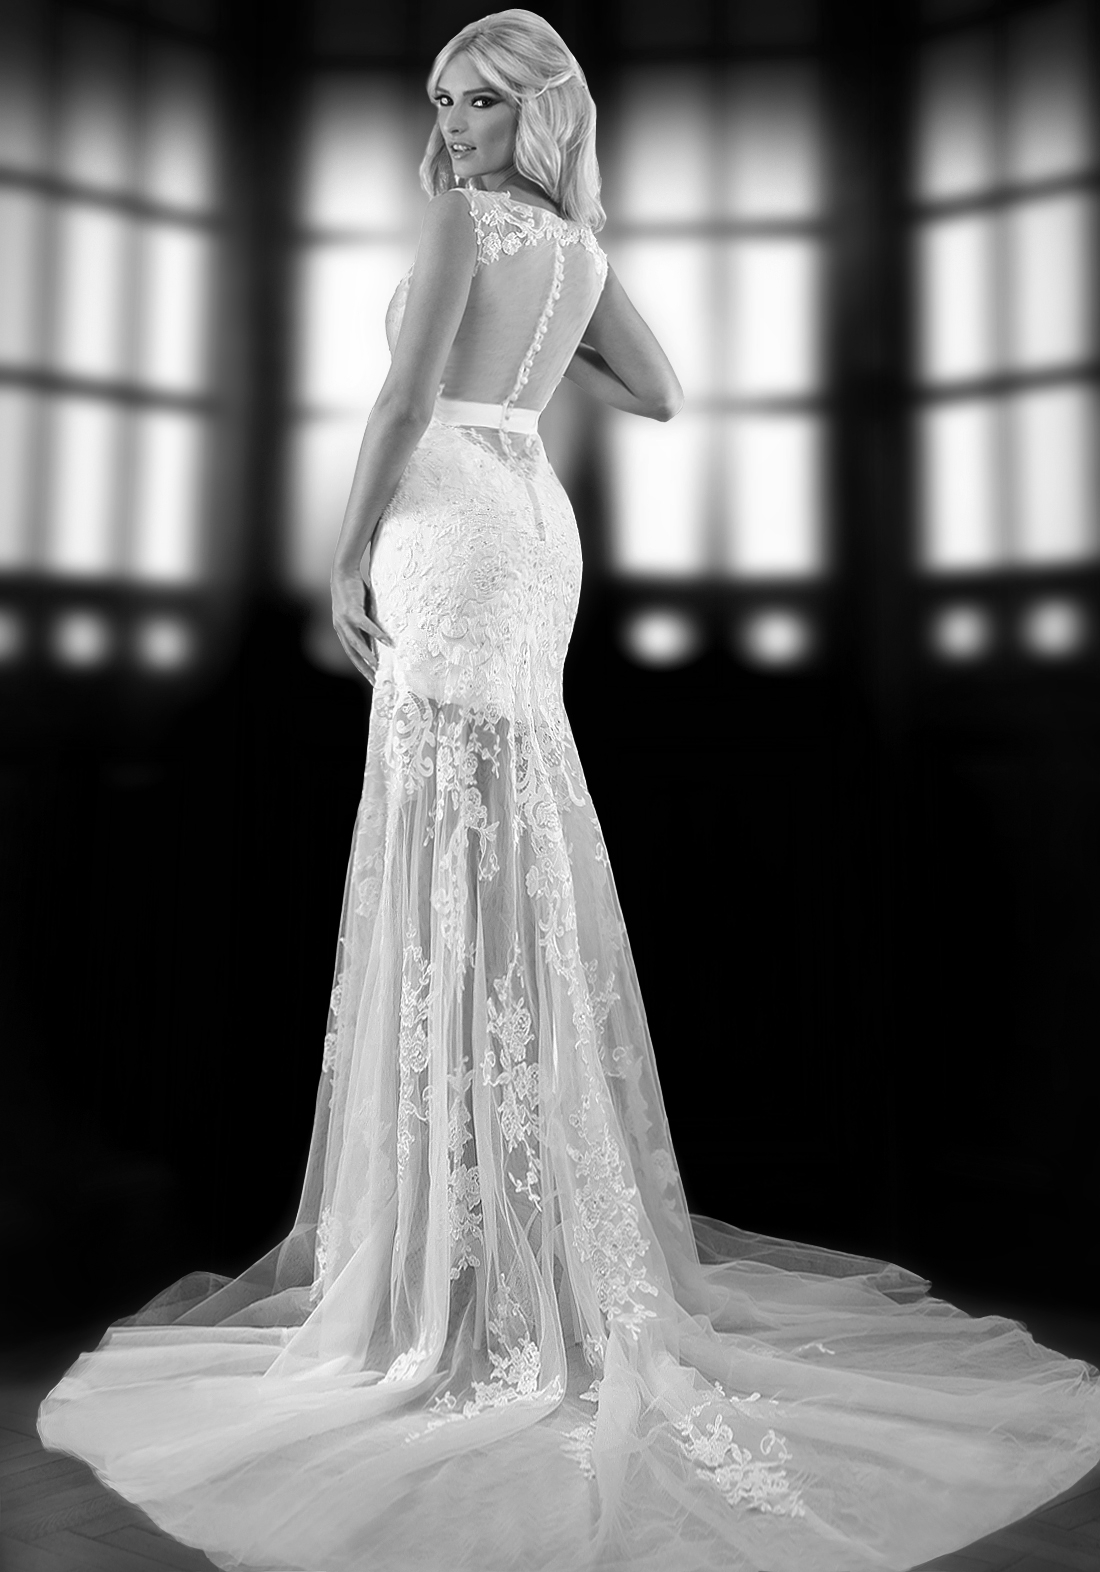 bien-savvy-wedding-dresses-2014-collection-31-01232014